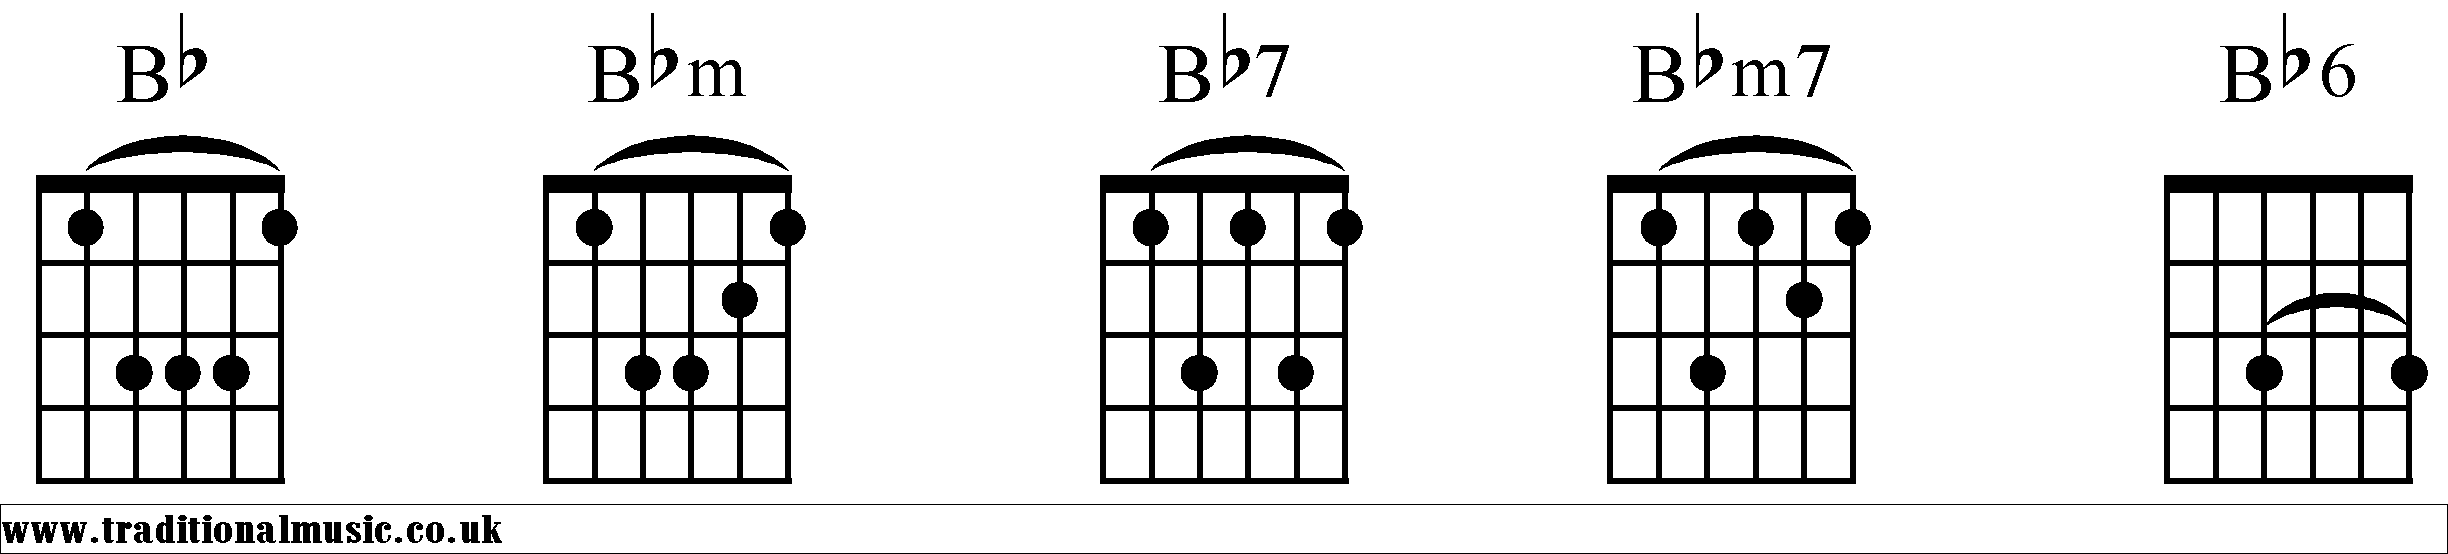 Bb Guitar Chord Diagram Diy Enthusiasts Wiring Diagrams